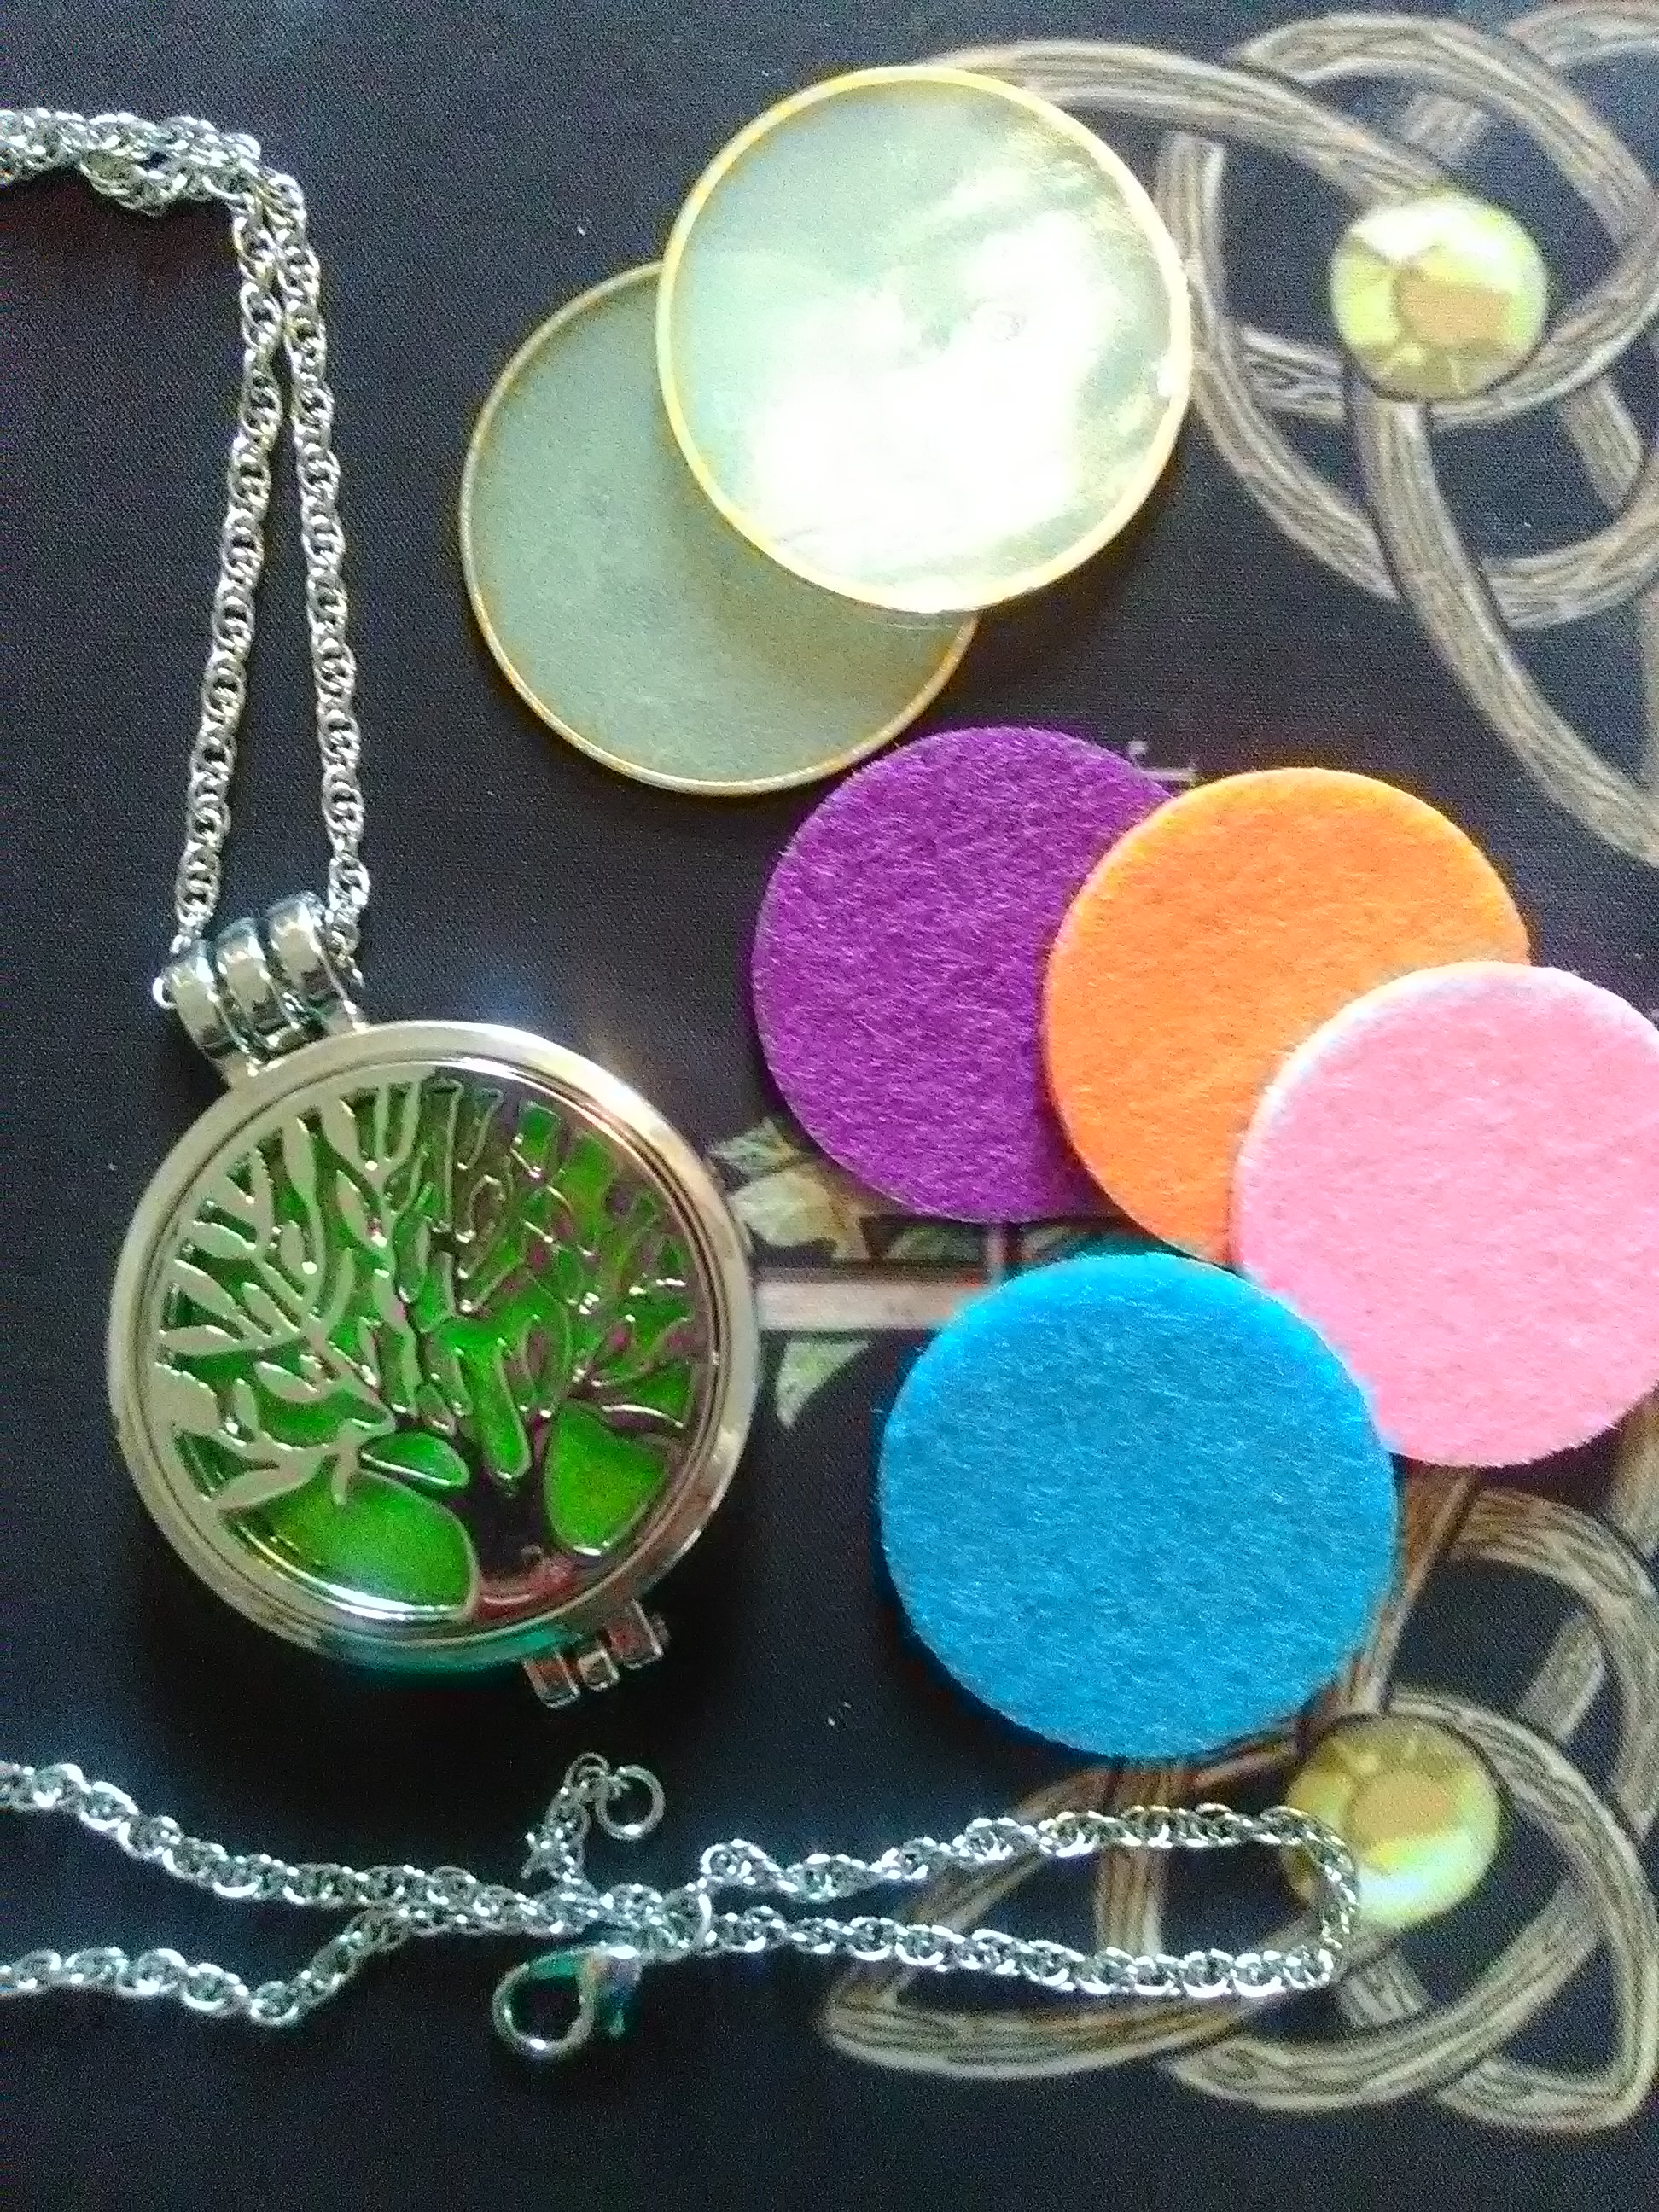 Luminous Tree of Life oil diffusure Necklace w/felt pads included